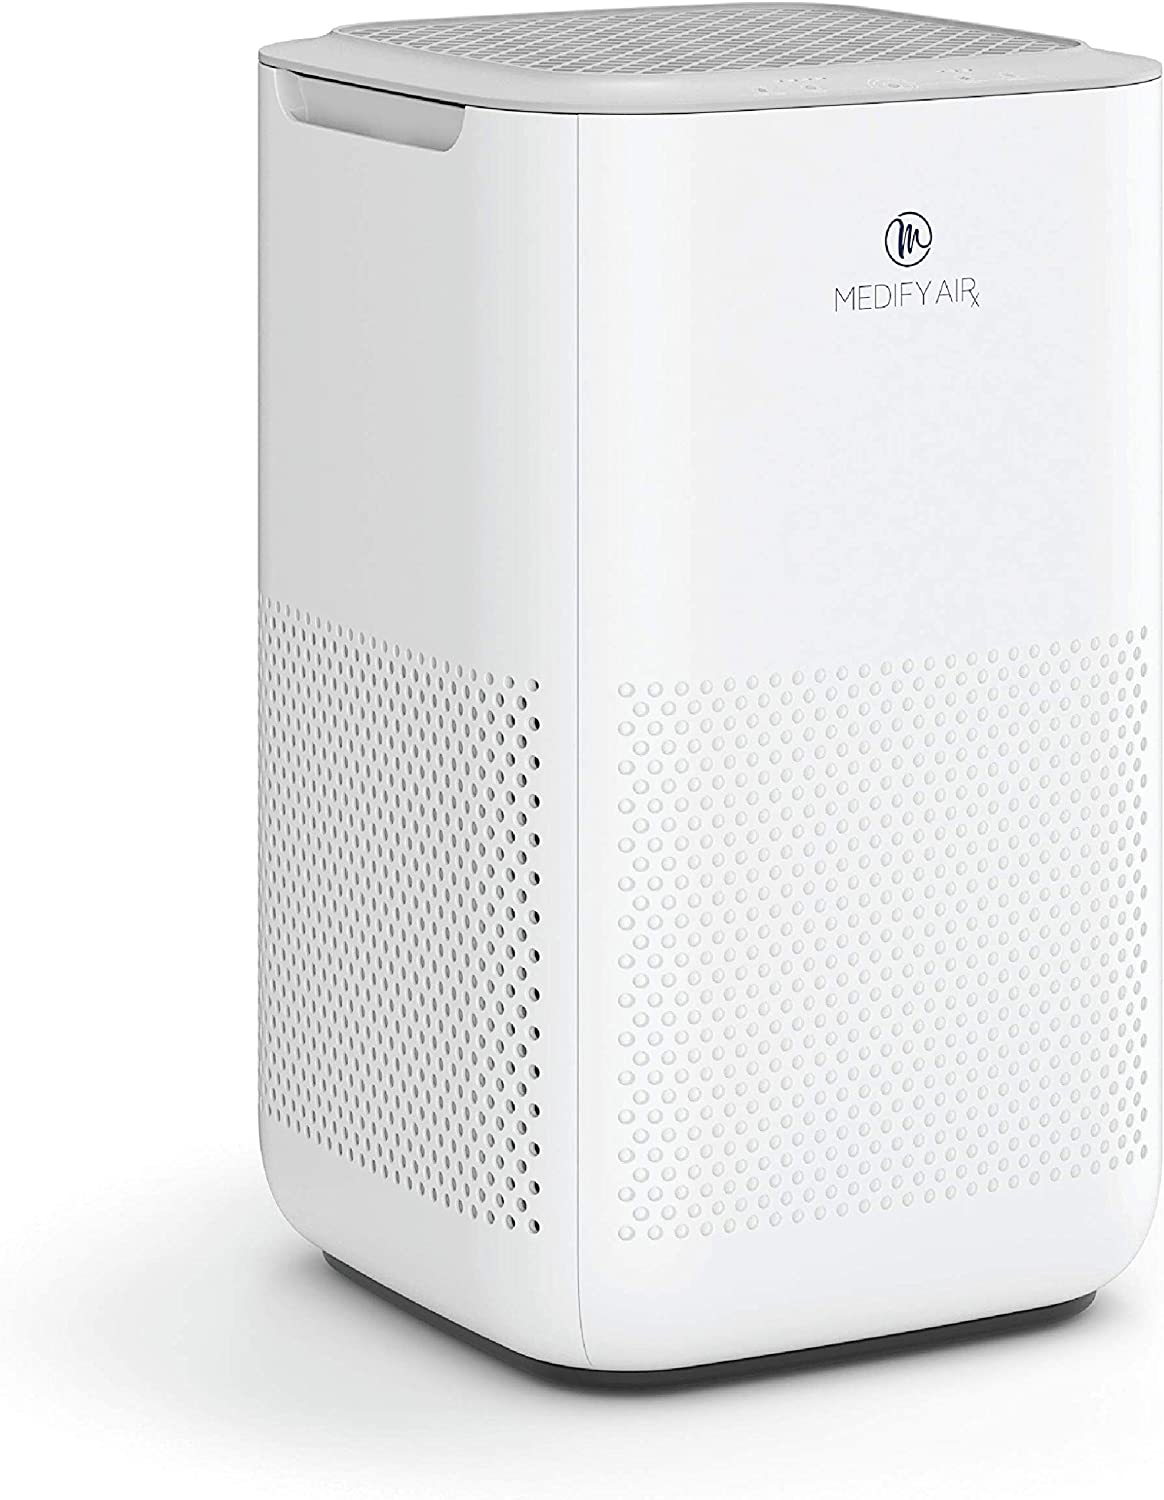 Medify MA-15 Air Purifier with H13 HEPA filter - a higher grade of HEPA | '3-in-1' Filters | 99.9% removal in a Modern Design - White 1Pack…